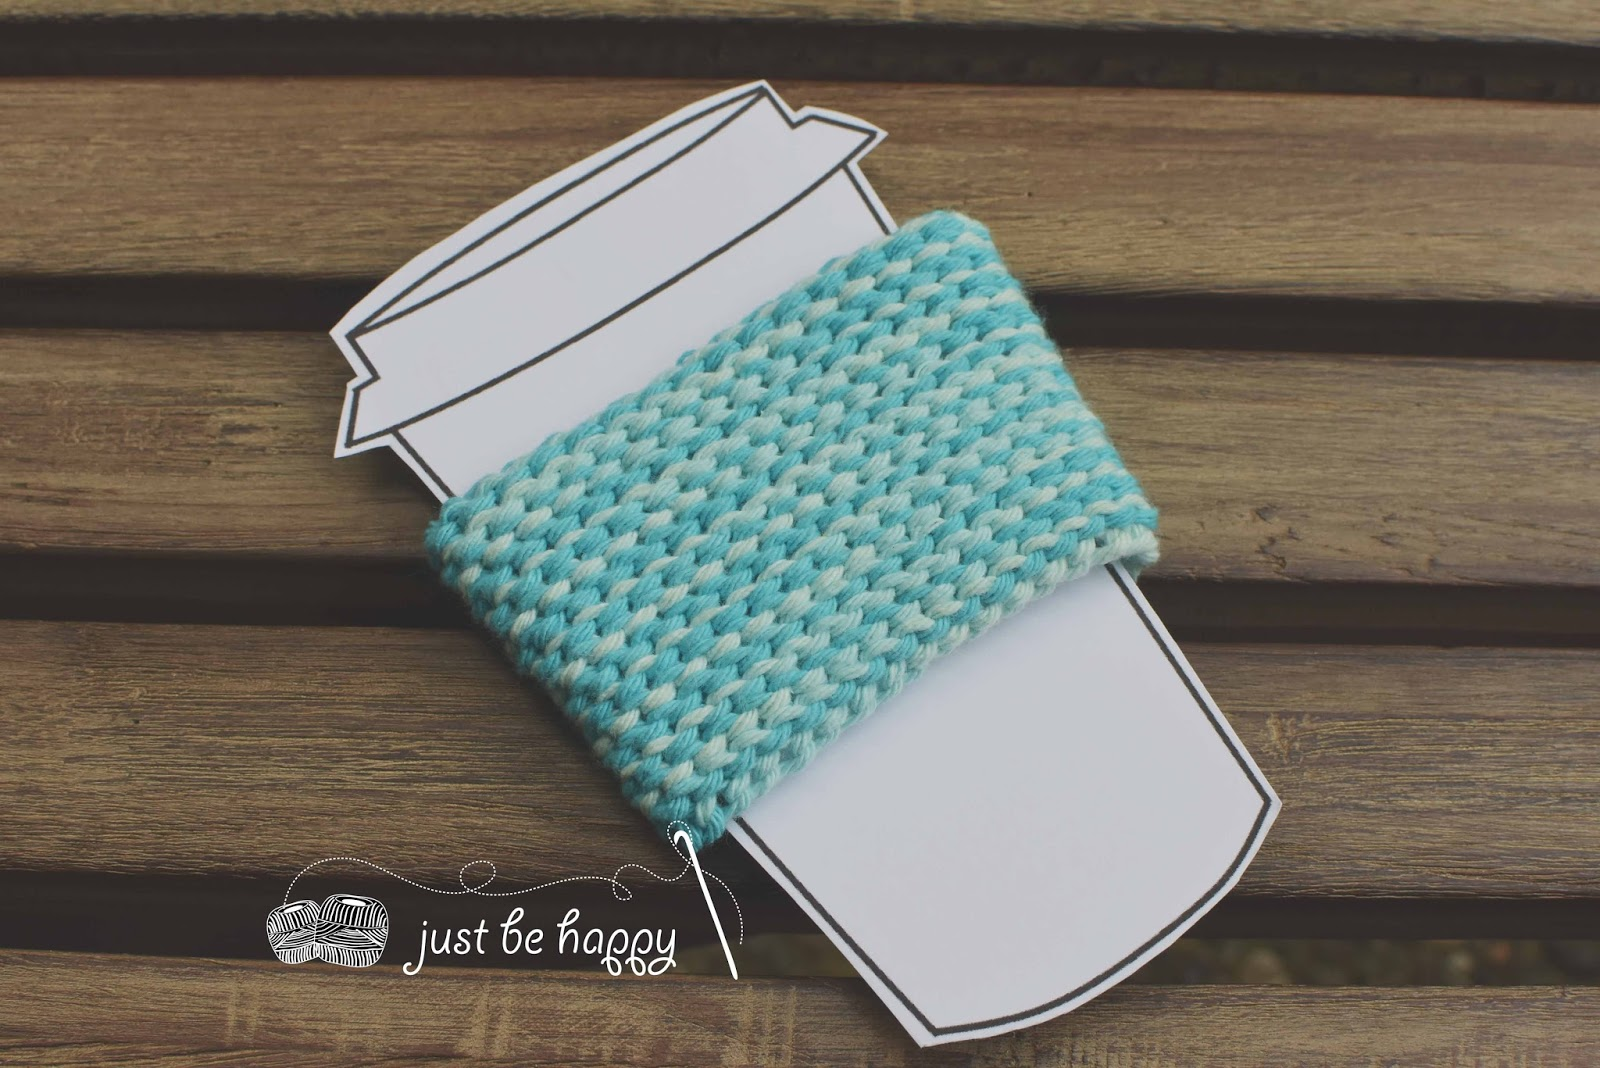 Just be happy!: Garter Stitch Coffee Sleeve - Free Crochet Pattern